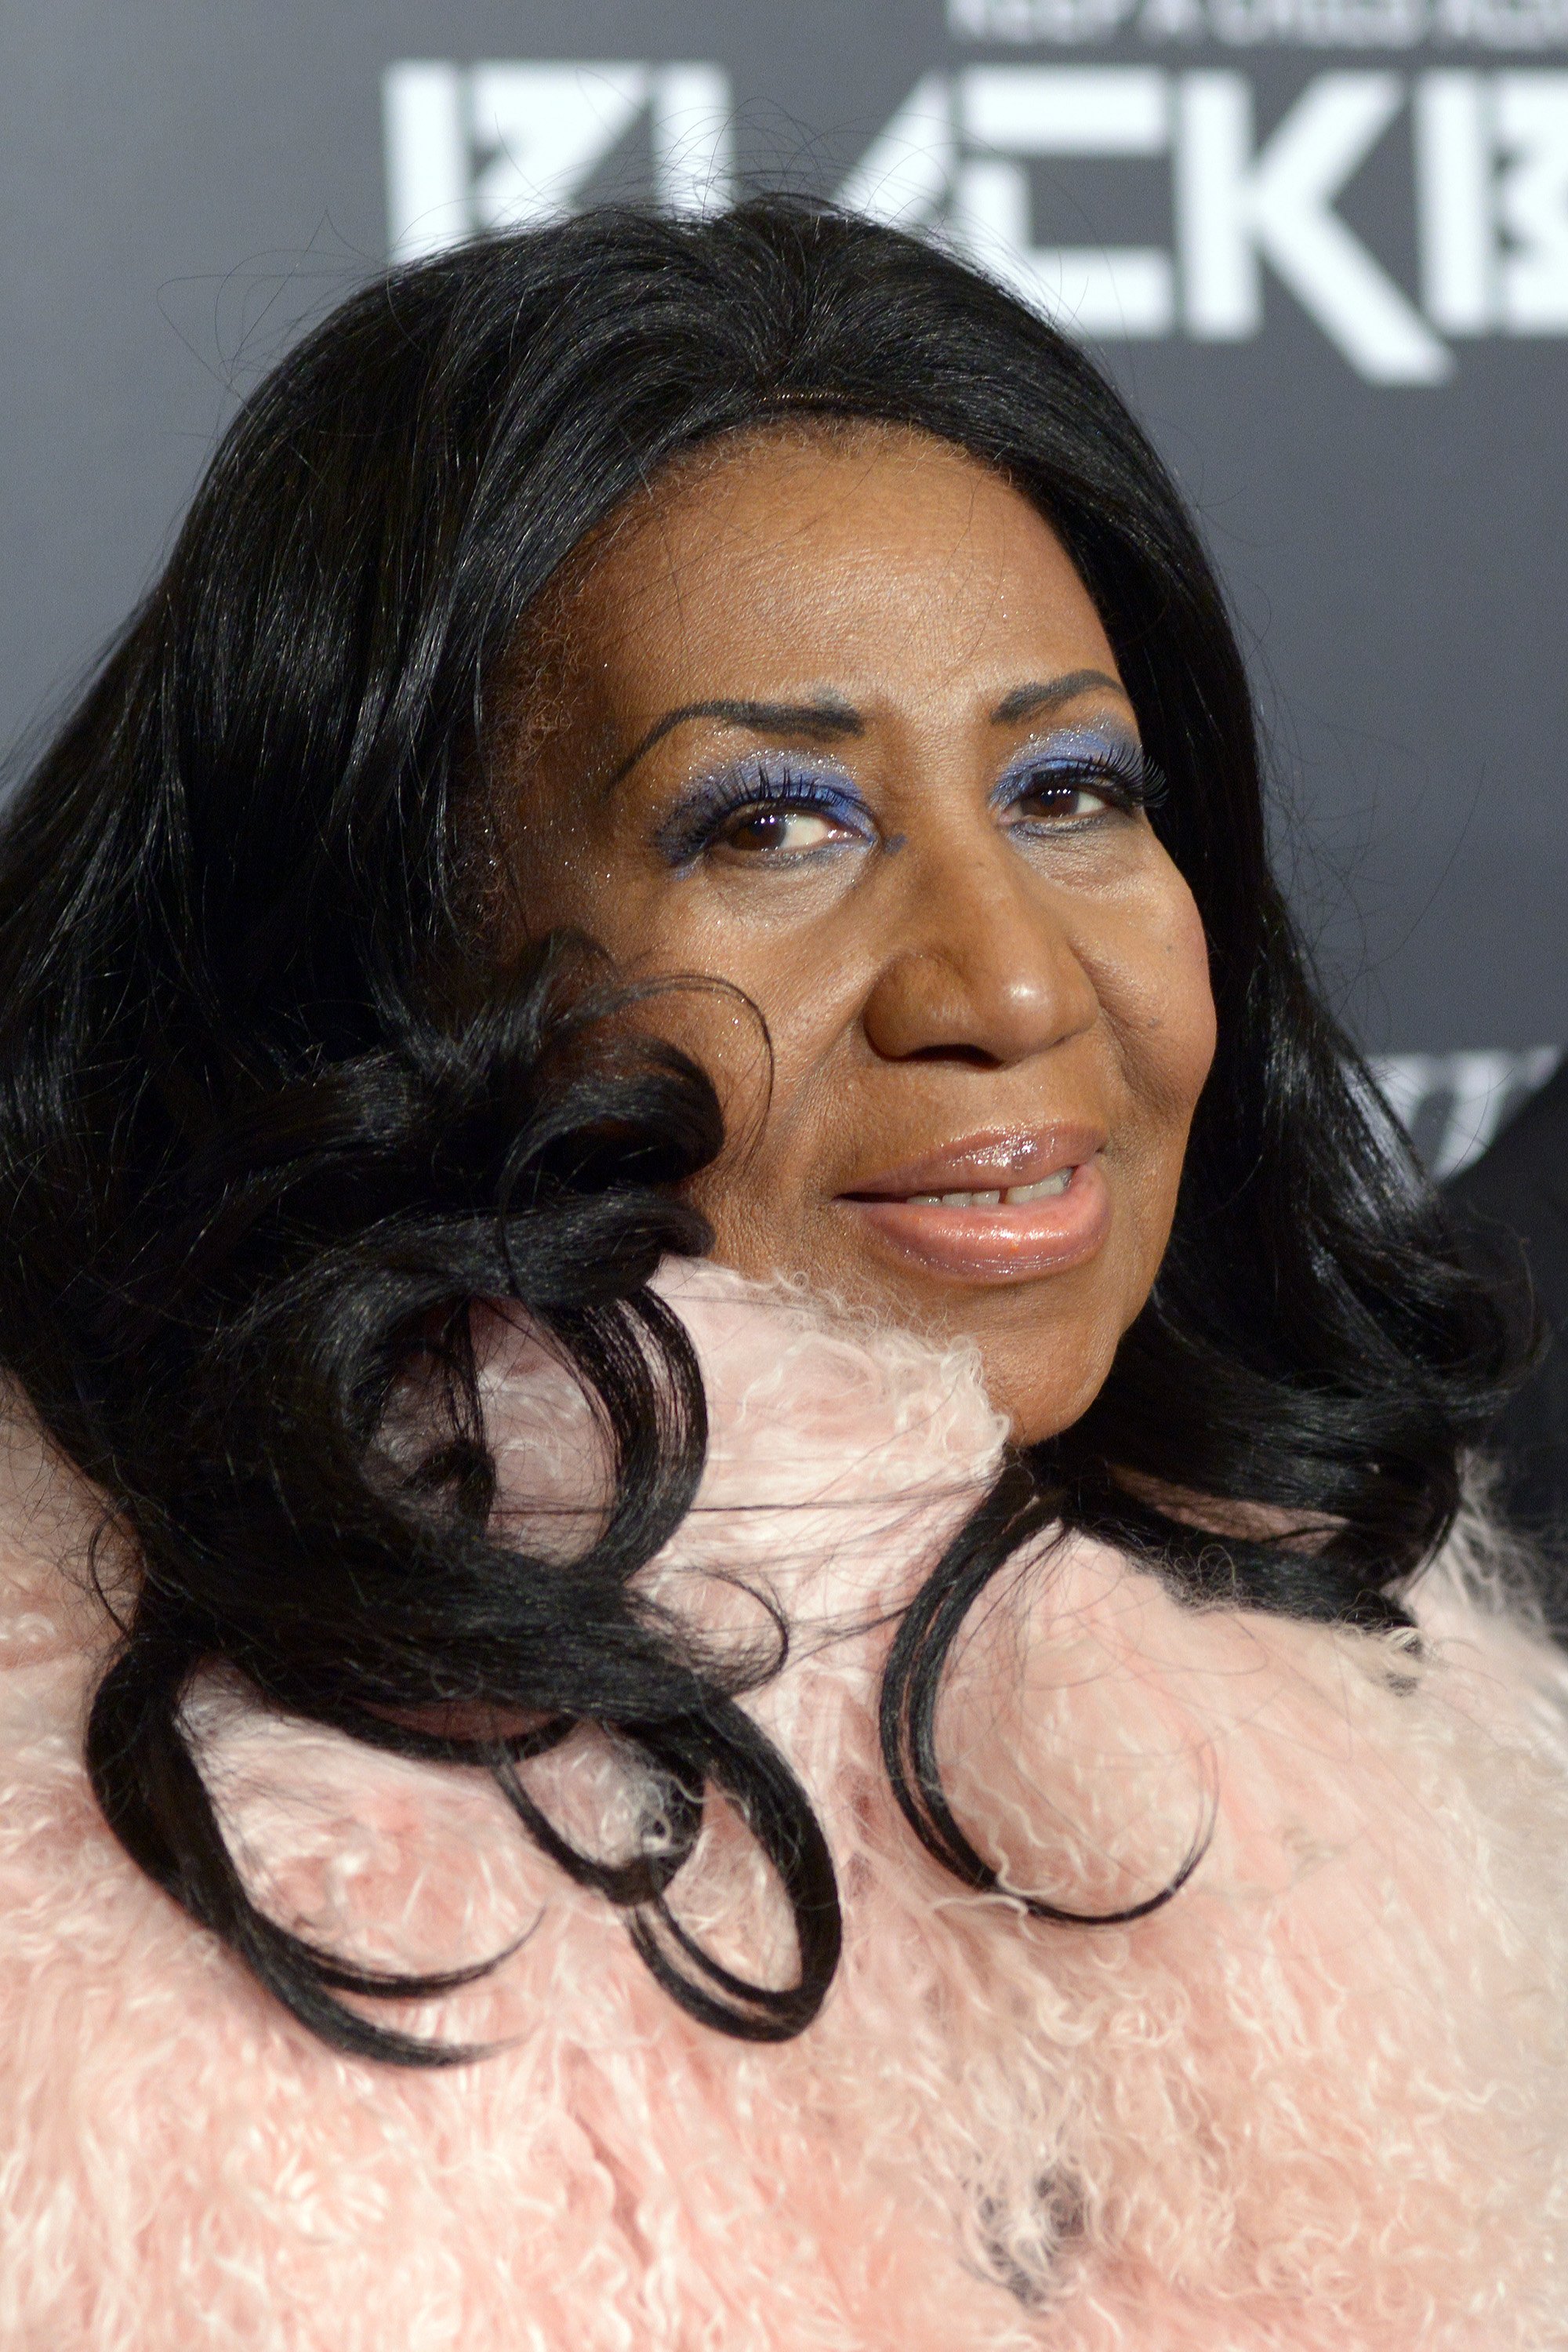 Keep A Child Alive's 11th Annual Black Ball at Hammerstein Ballroom - ArrivalsFeaturing: Aretha FranklinWhere: New York City, New York, United StatesWhen: 30 Oct 2014Credit: Ivan Nikolov/WENN.com